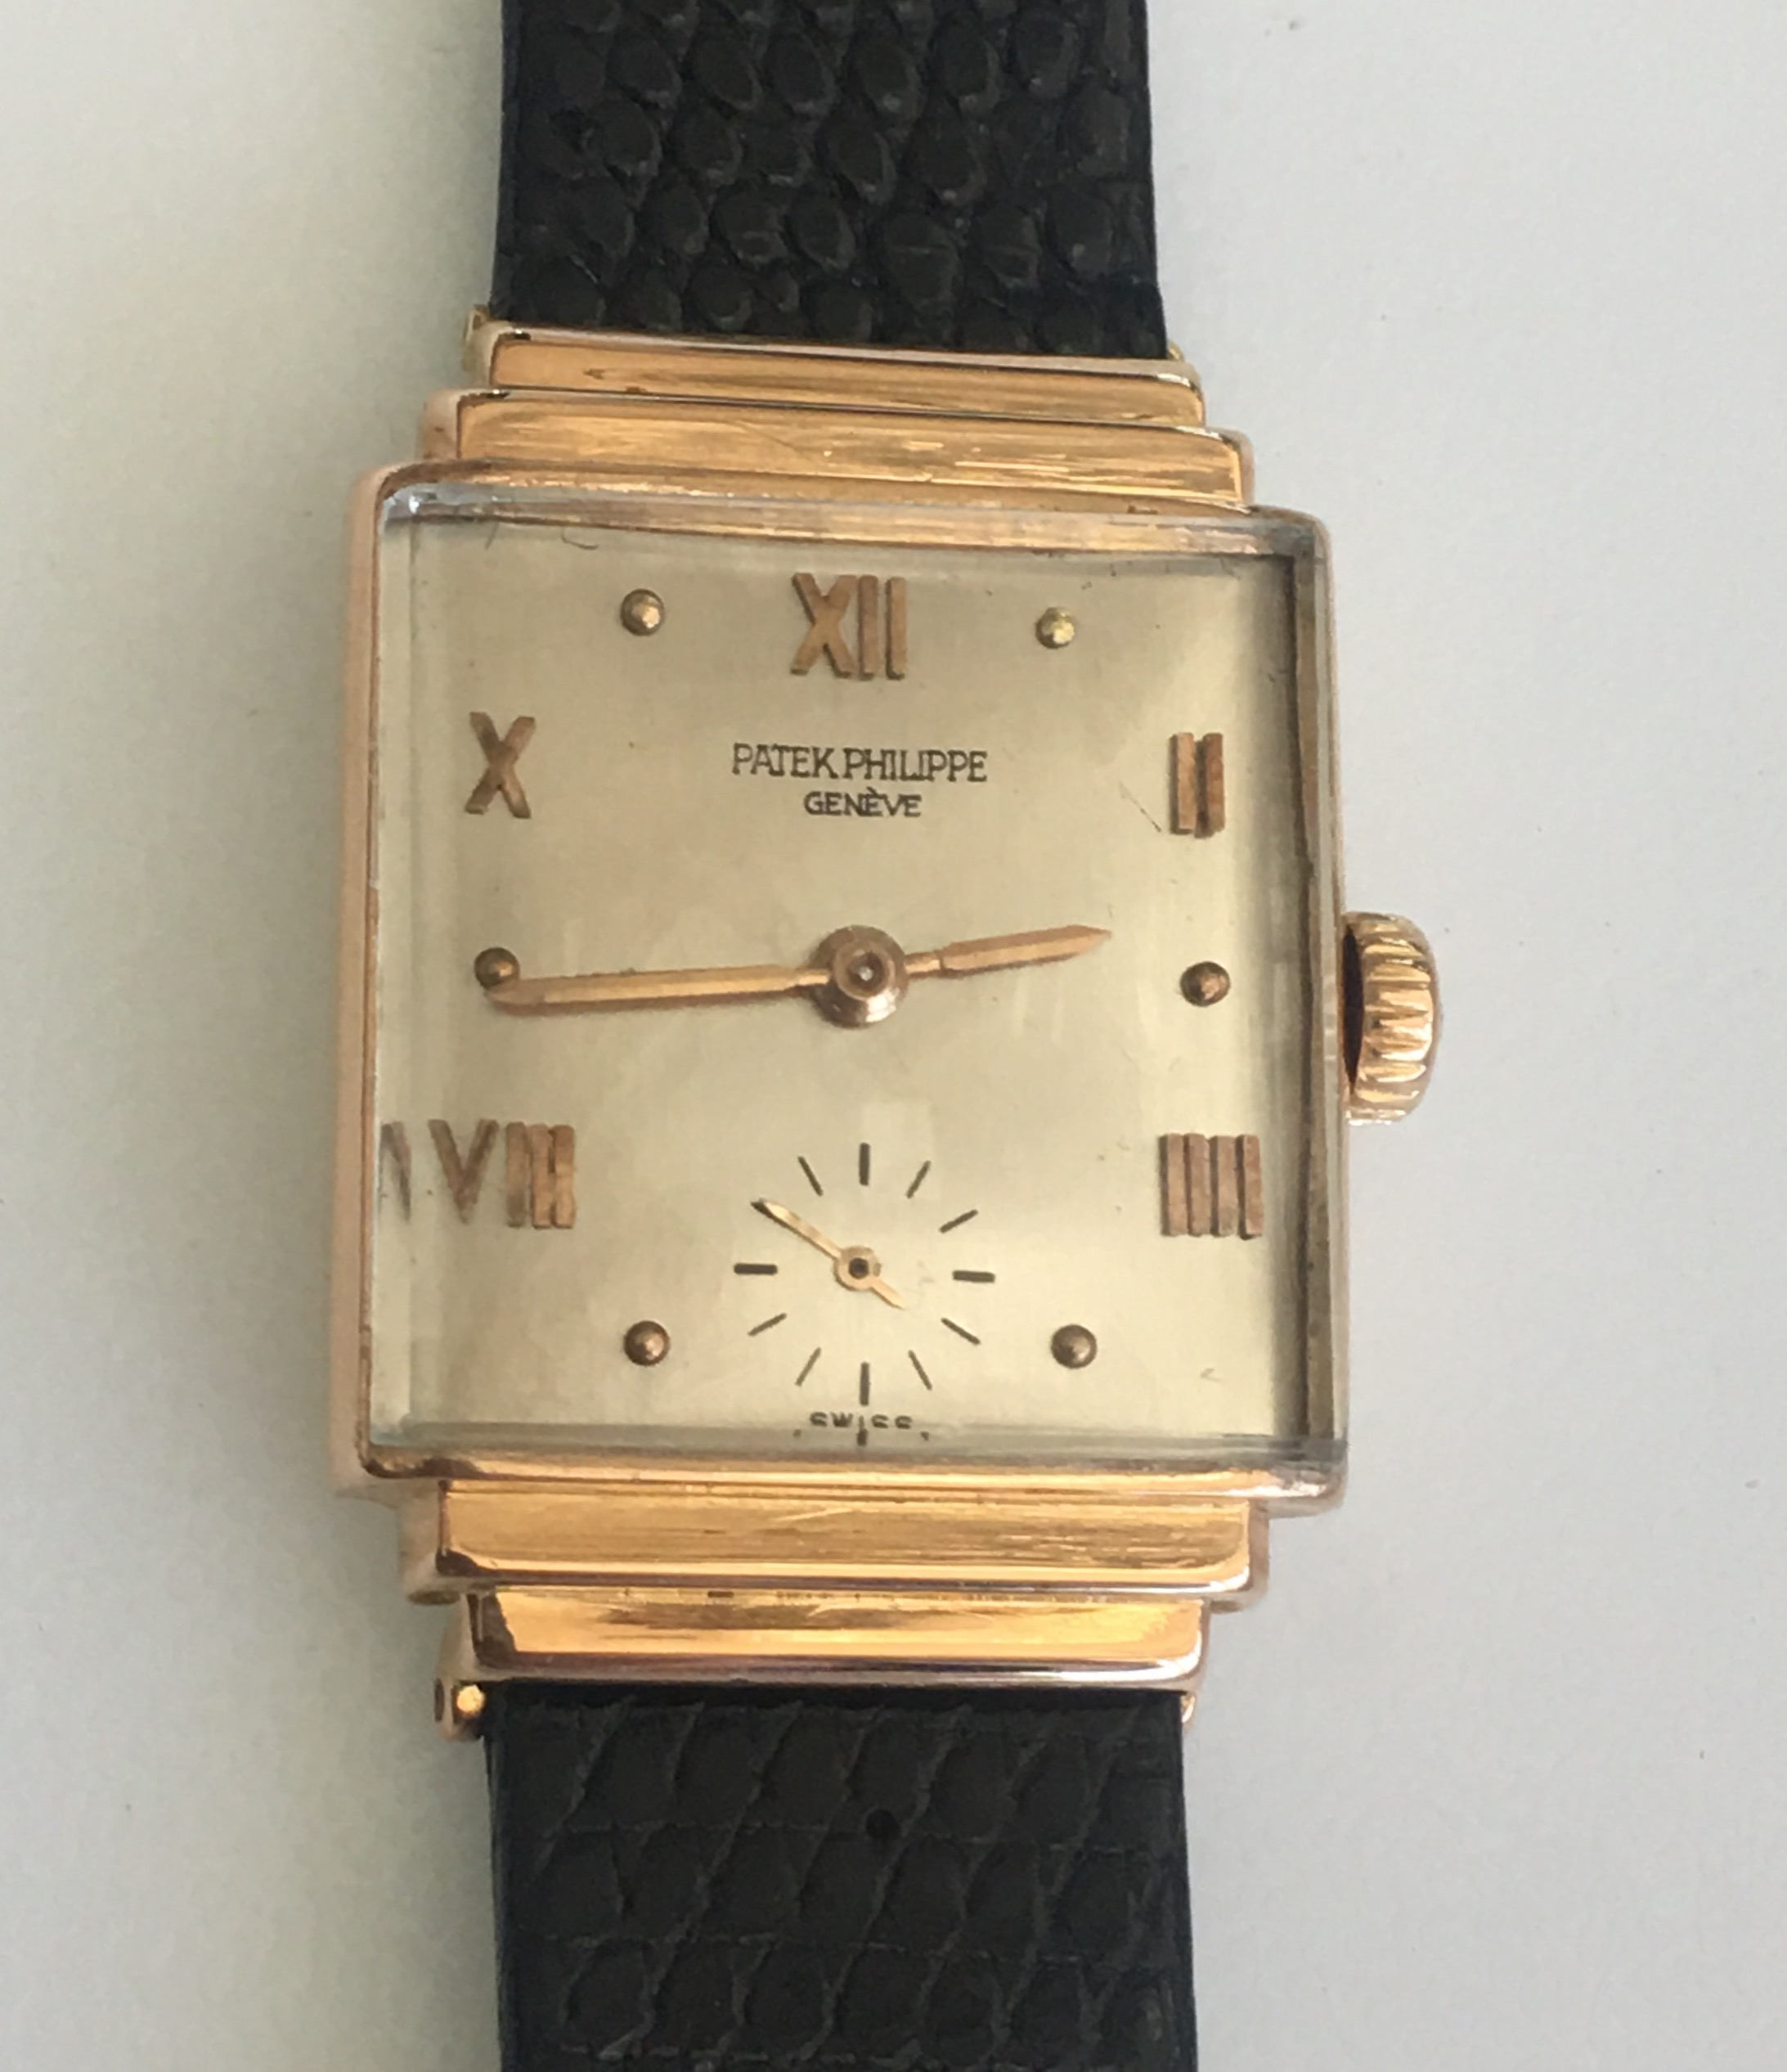 patek philippe geneve . Tampa jewelry store watch repair